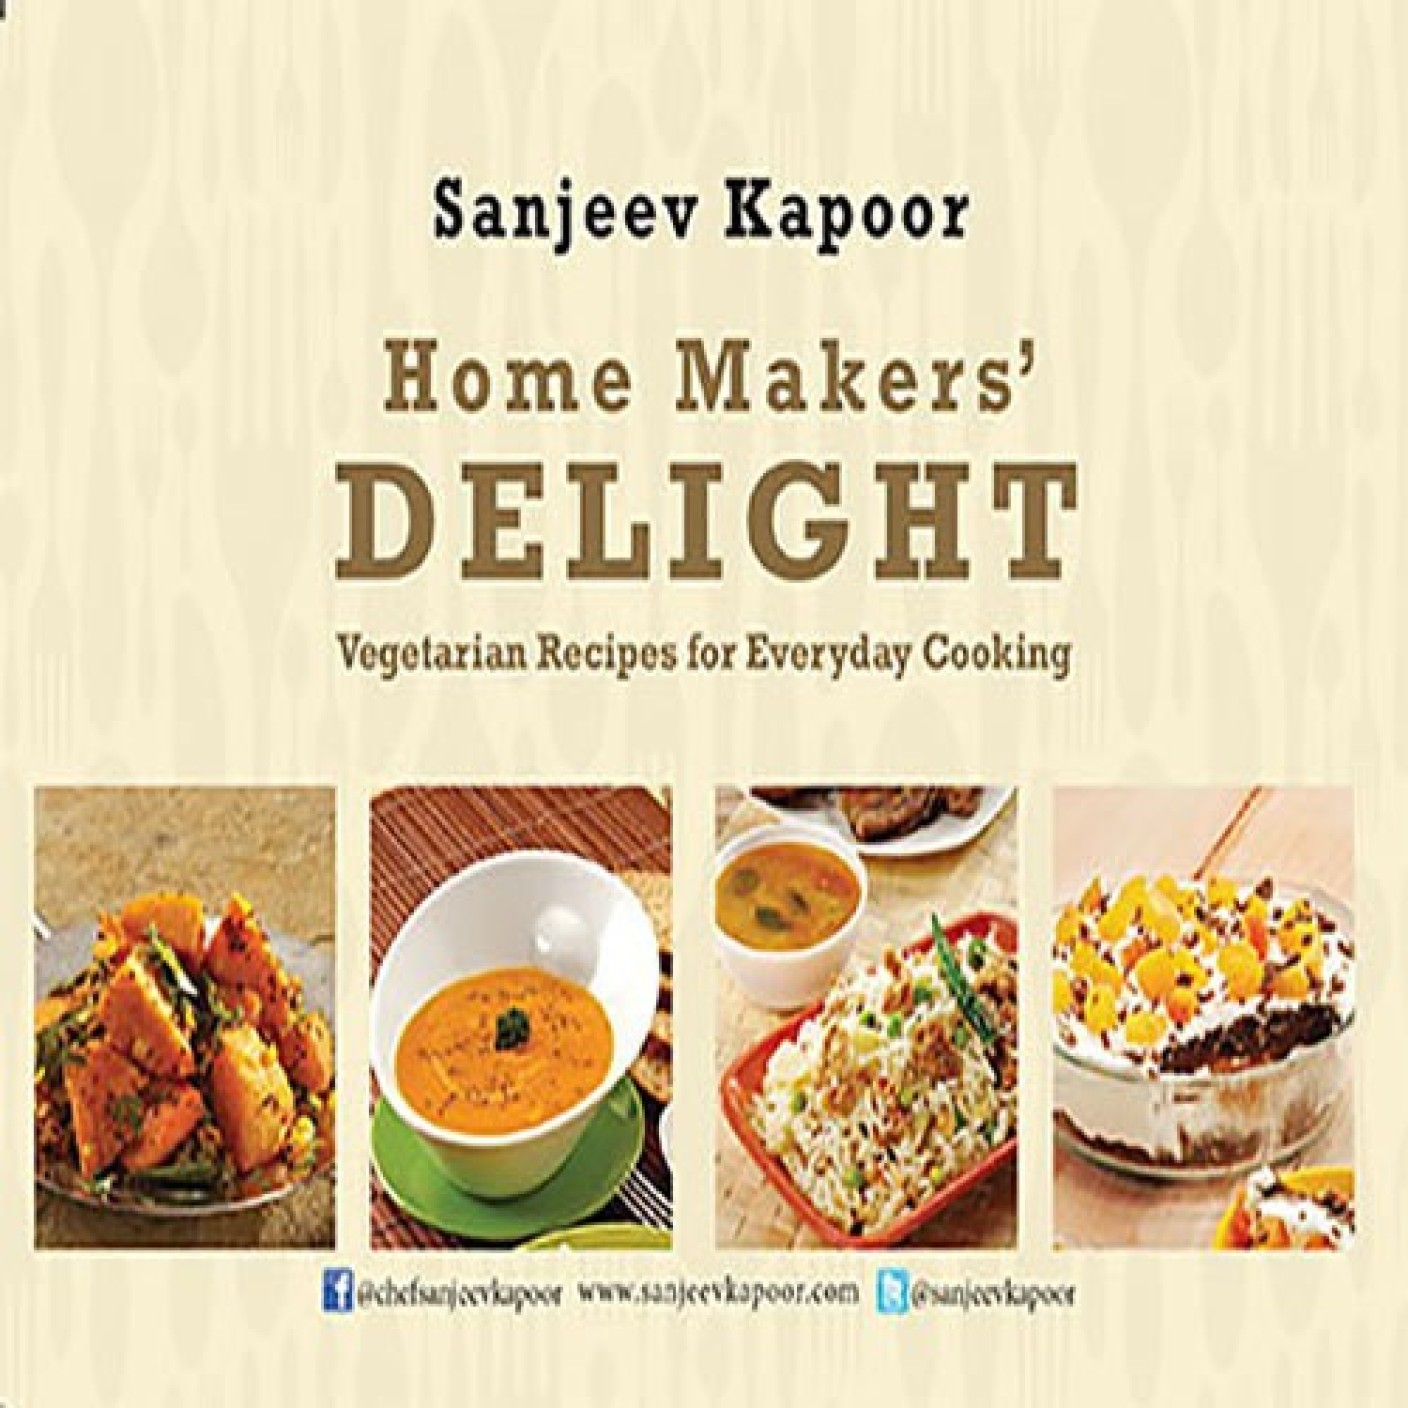 Home makers delight vegetarian recipes for everyday cooking buy home makers delight vegetarian recipes for everyday cooking add to cart forumfinder Images